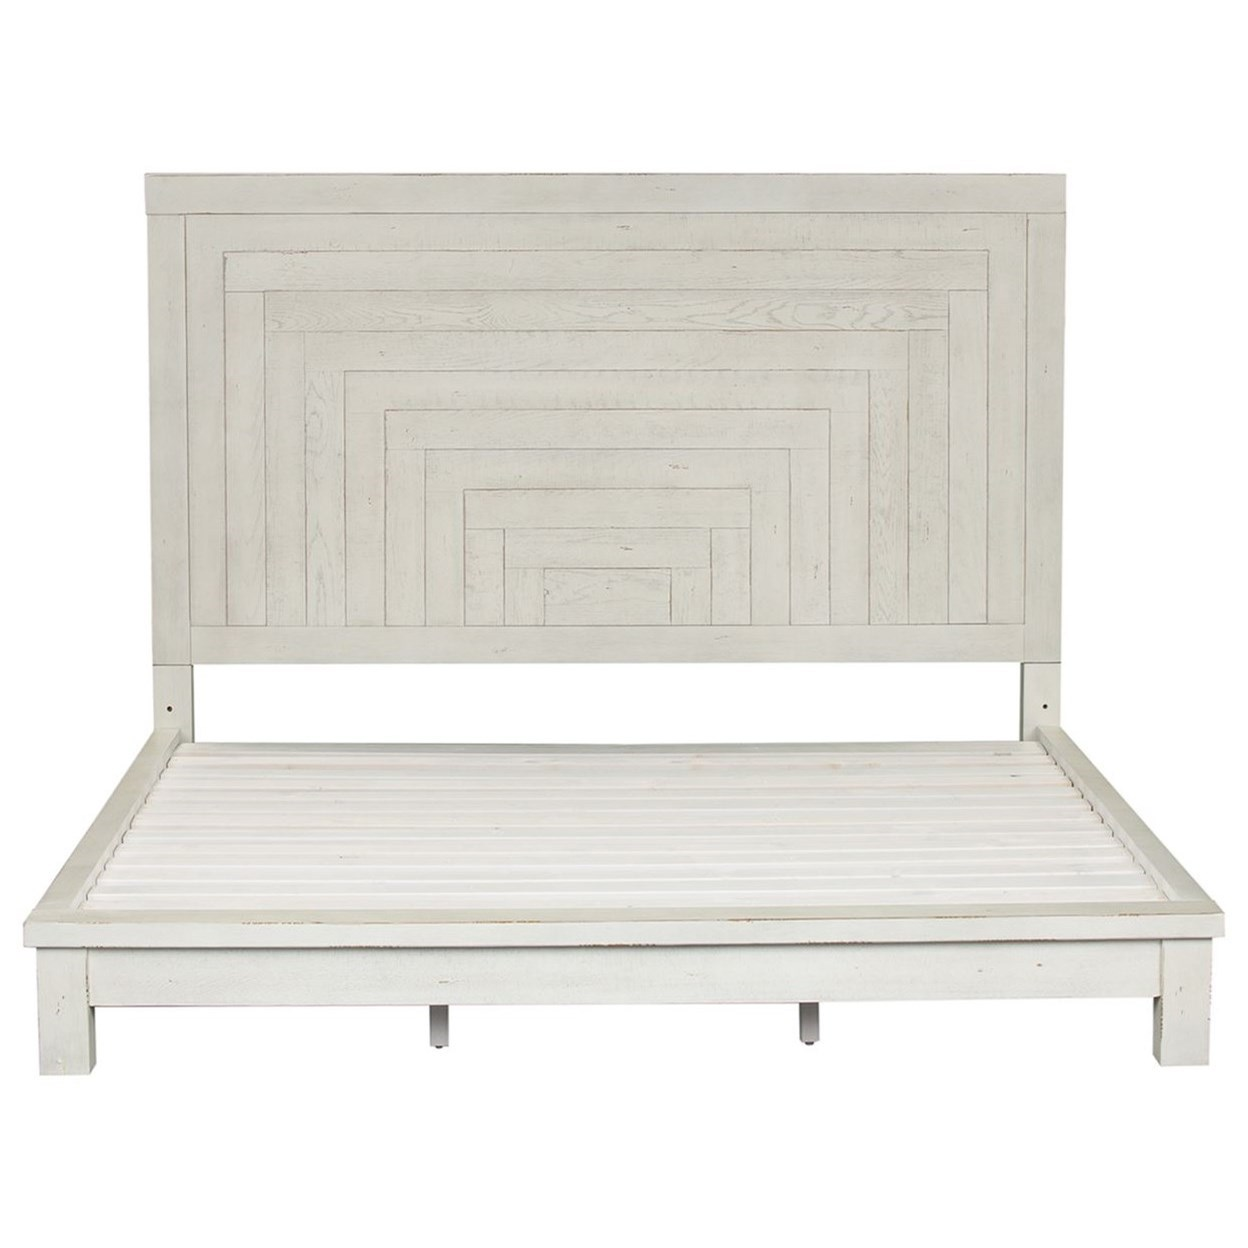 Modern Farmhouse California King Platform bed by Liberty Furniture at Suburban Furniture